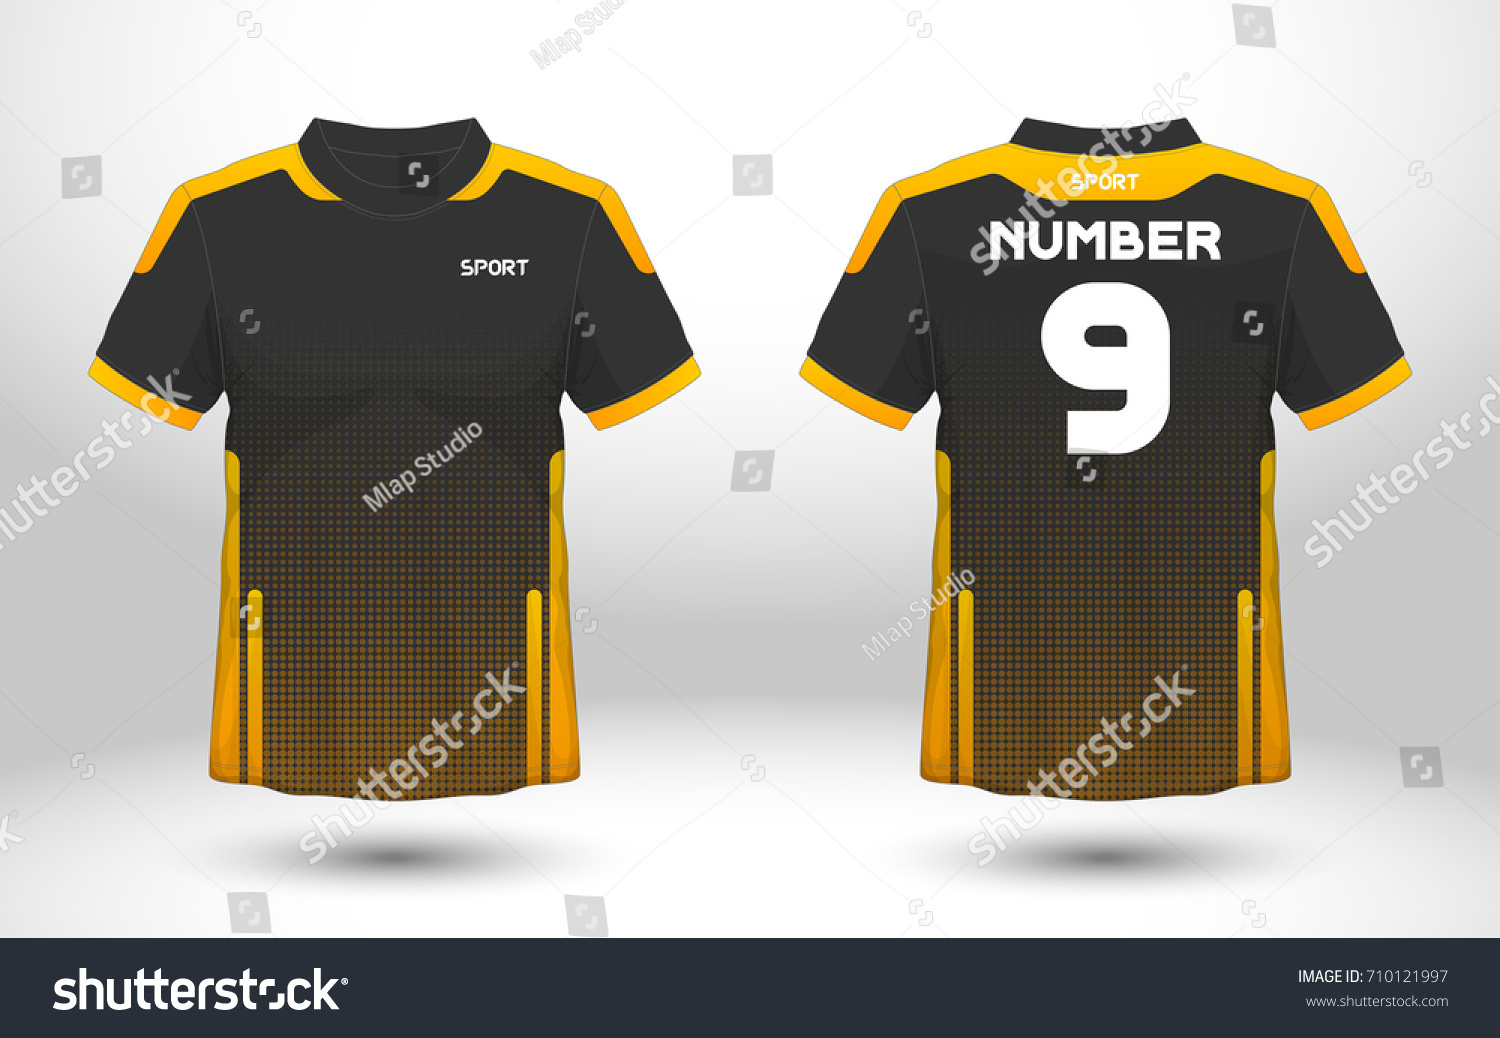 889f2be56 Black and yellow layout football sport t-shirt design. Template front, back  view.